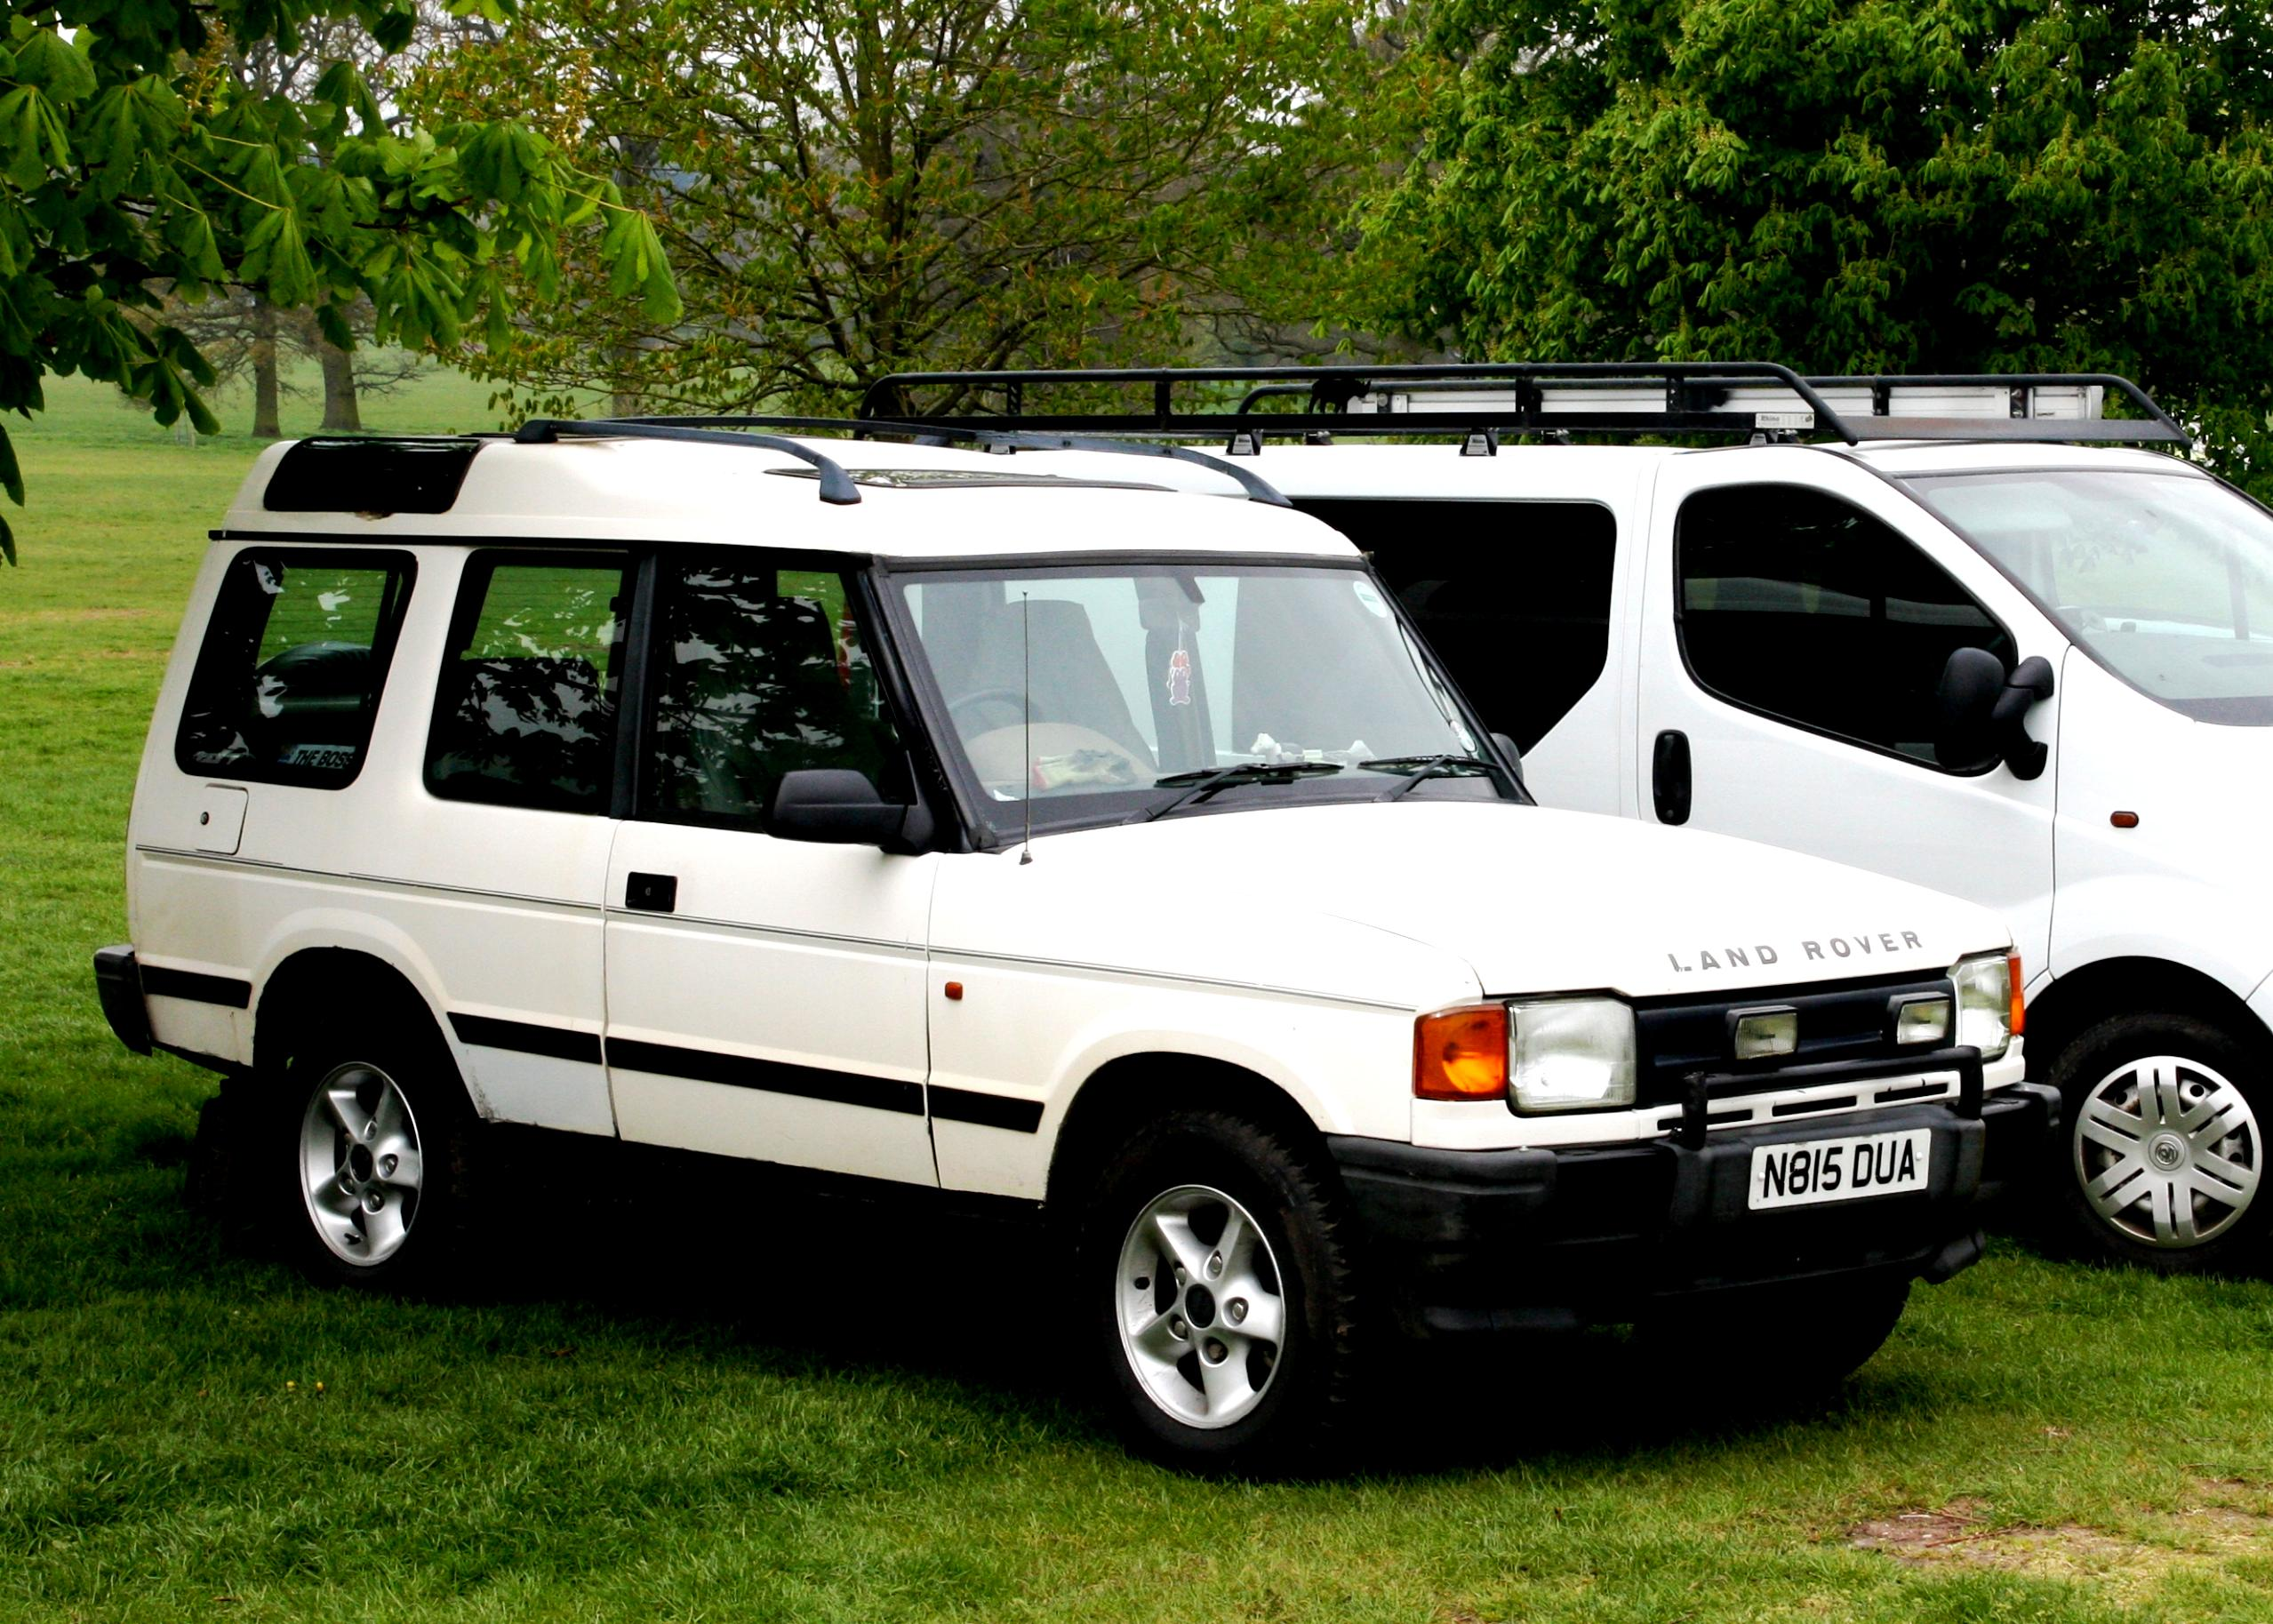 Land Rover Discovery 3 Doors 1994 #3 : landrover doors - pezcame.com